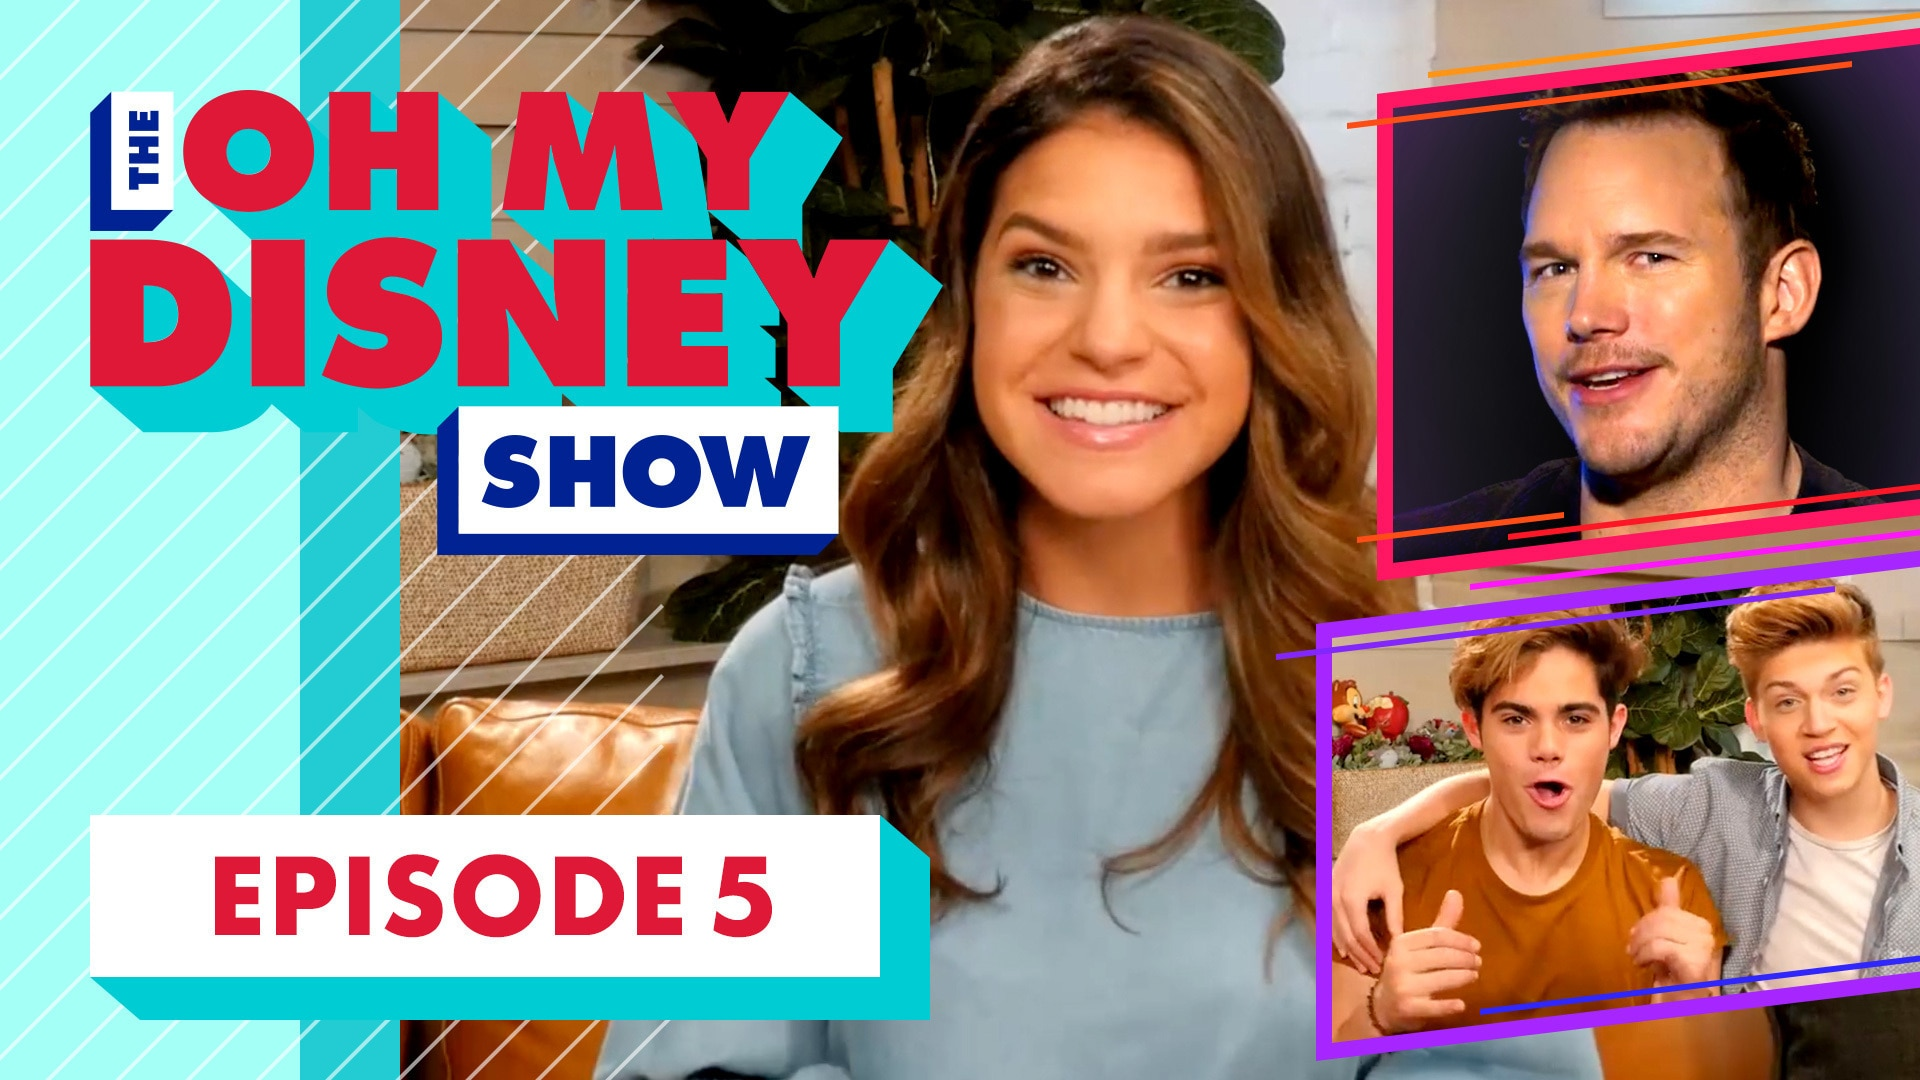 The Oh My Disney Show: The Cast of Guardians of the Galaxy Vol. 2 and FIYM